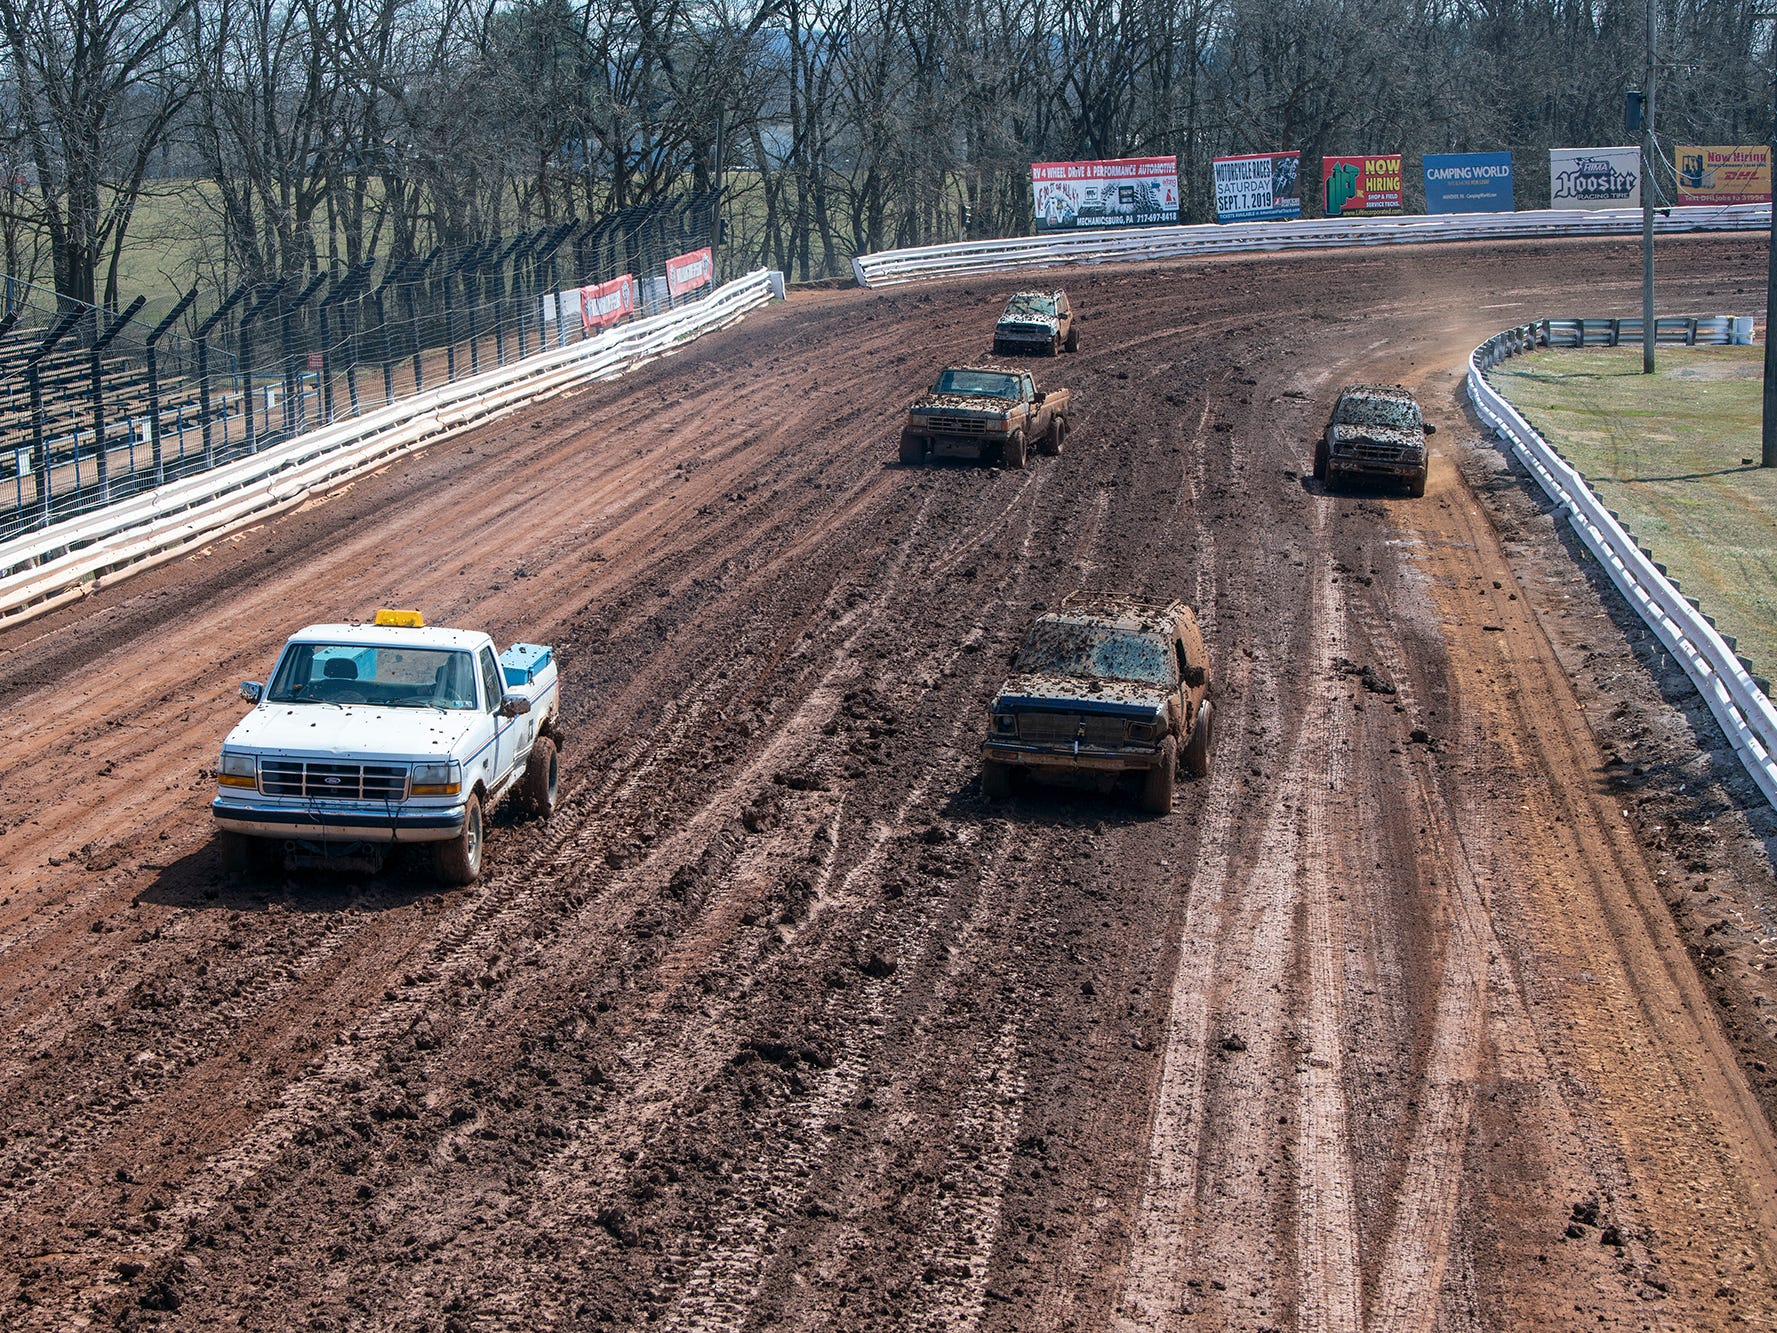 The track is prepared before the Williams Grove season opener for 410 sprints Sunday March 17, 2019.